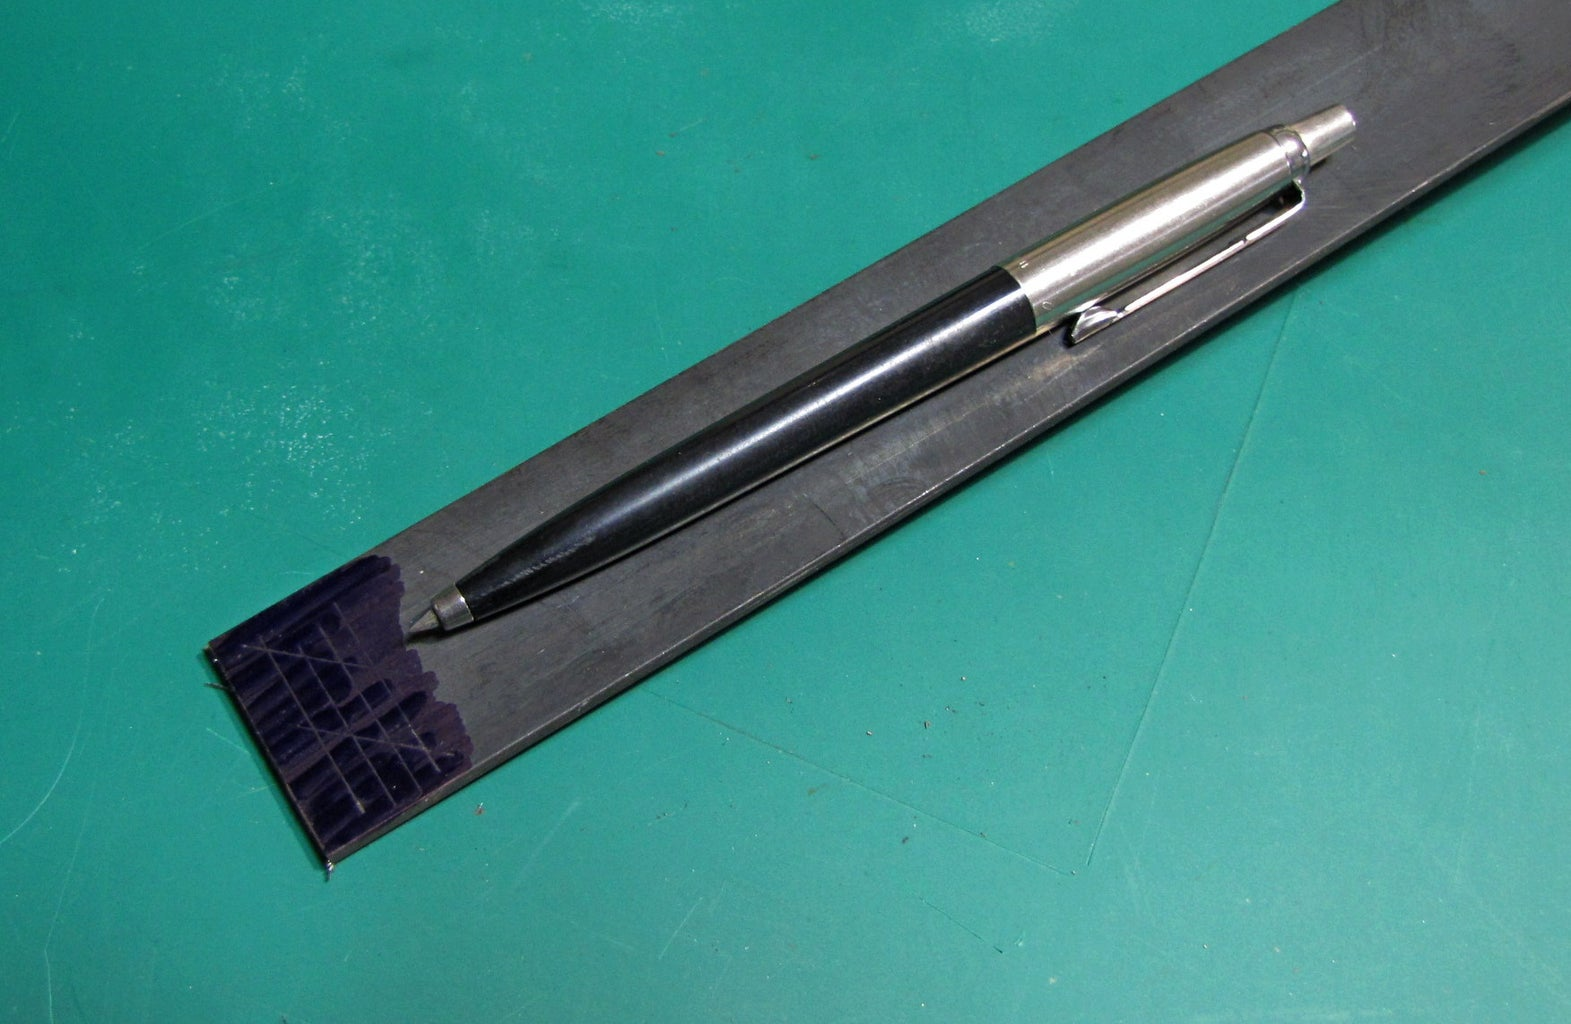 How to Turn a Ballpoint Pen Into a Metal Scriber...